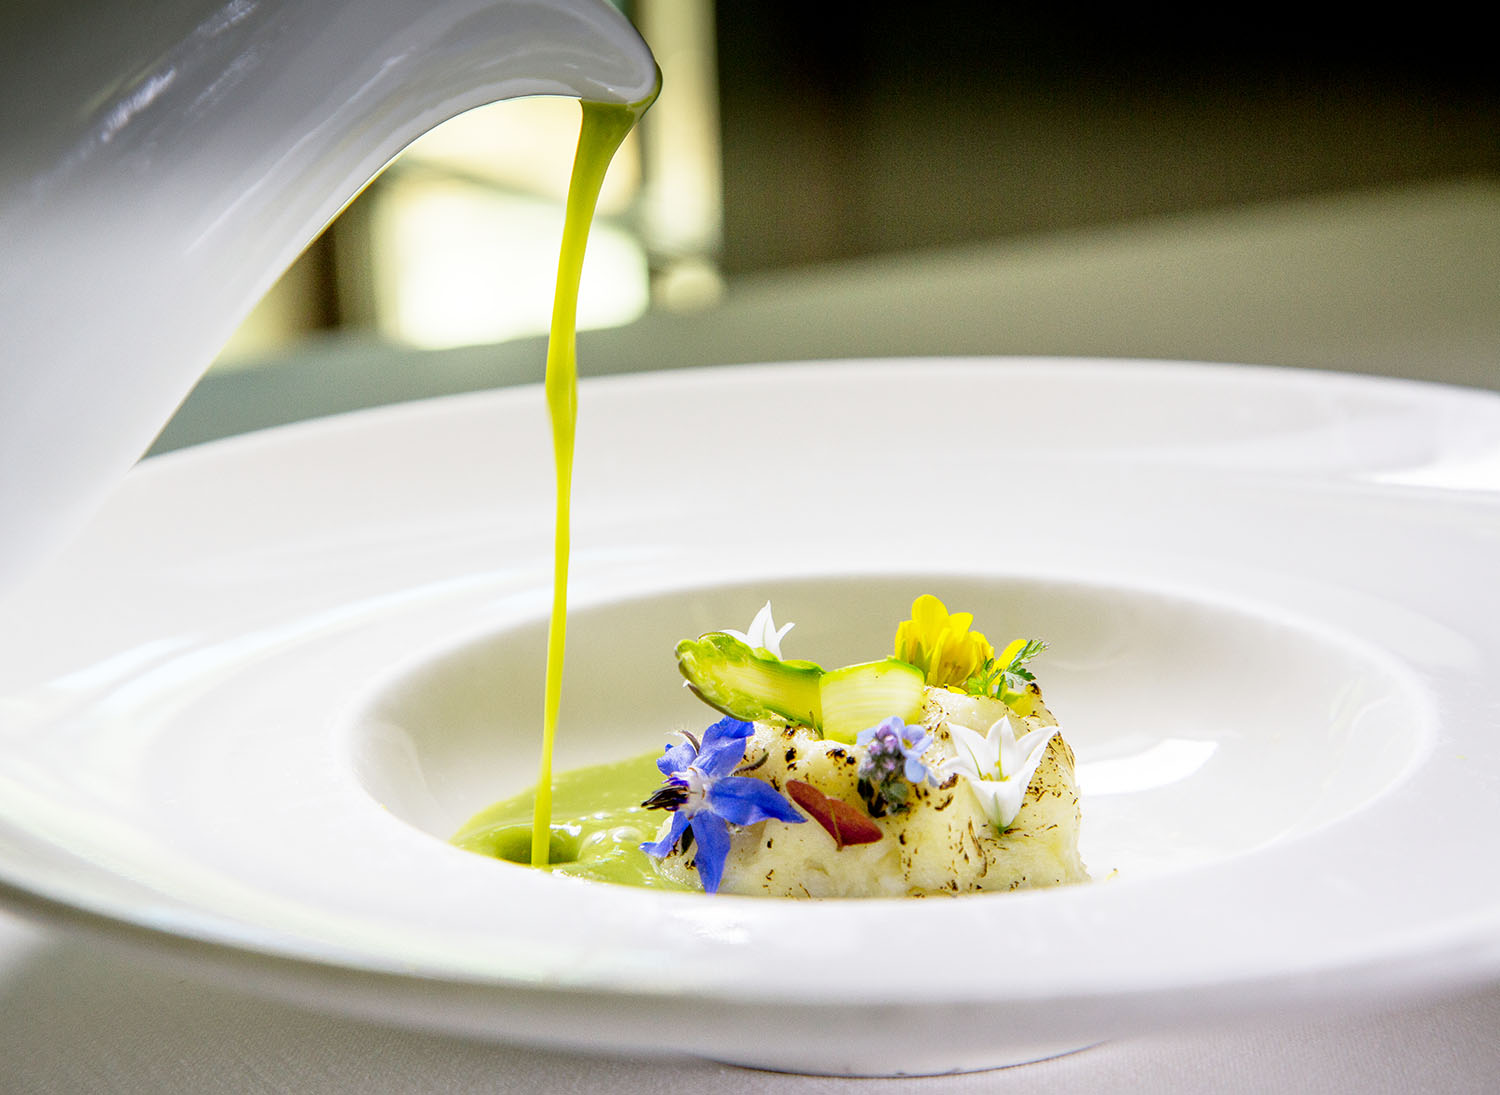 Farmhouse Asparagus Soup with Crab-PS.jpg